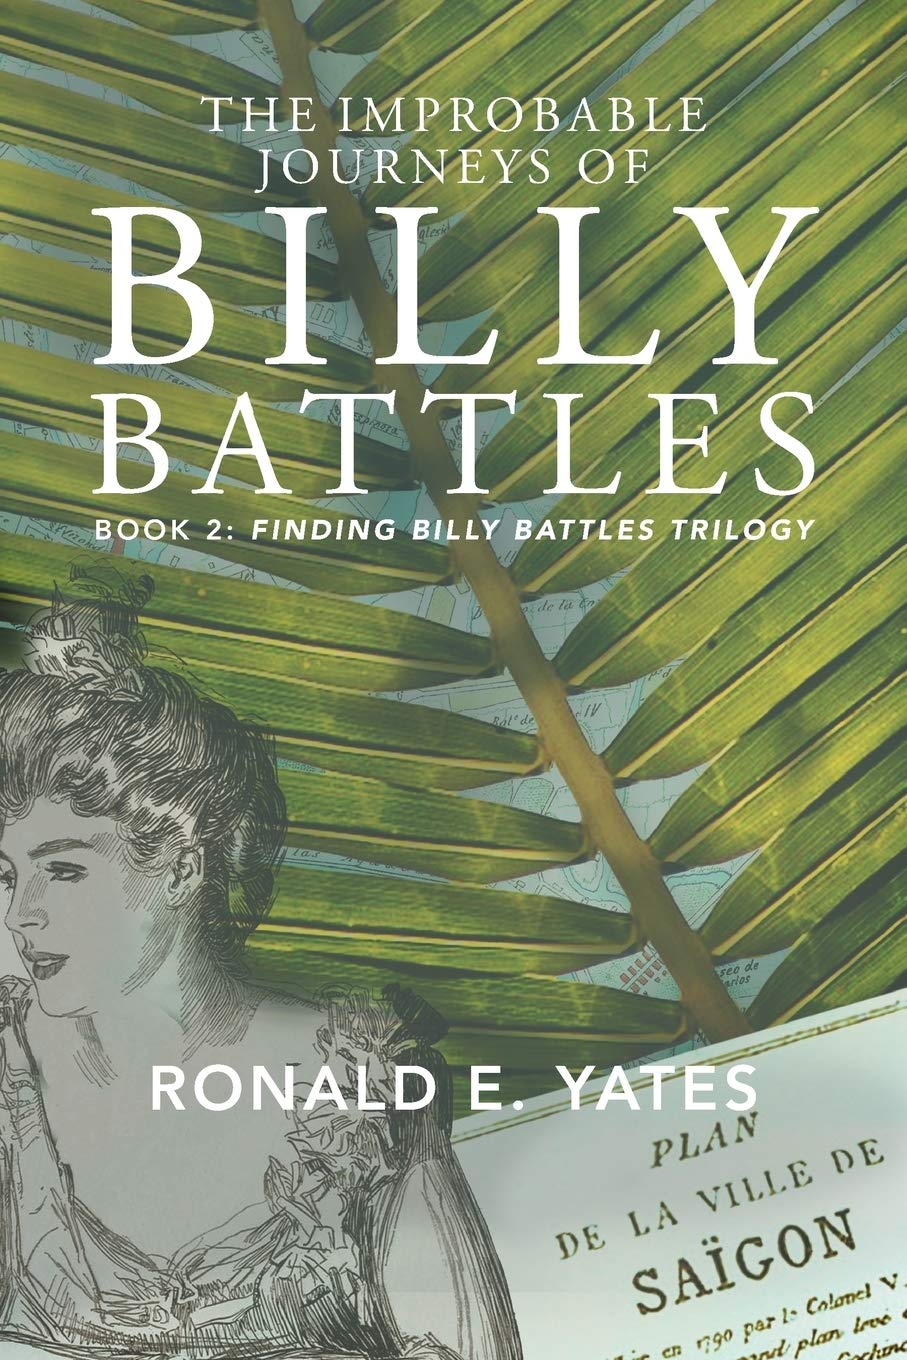 The Improbable Journeys of Billy Battles: Book 2, Finding ...